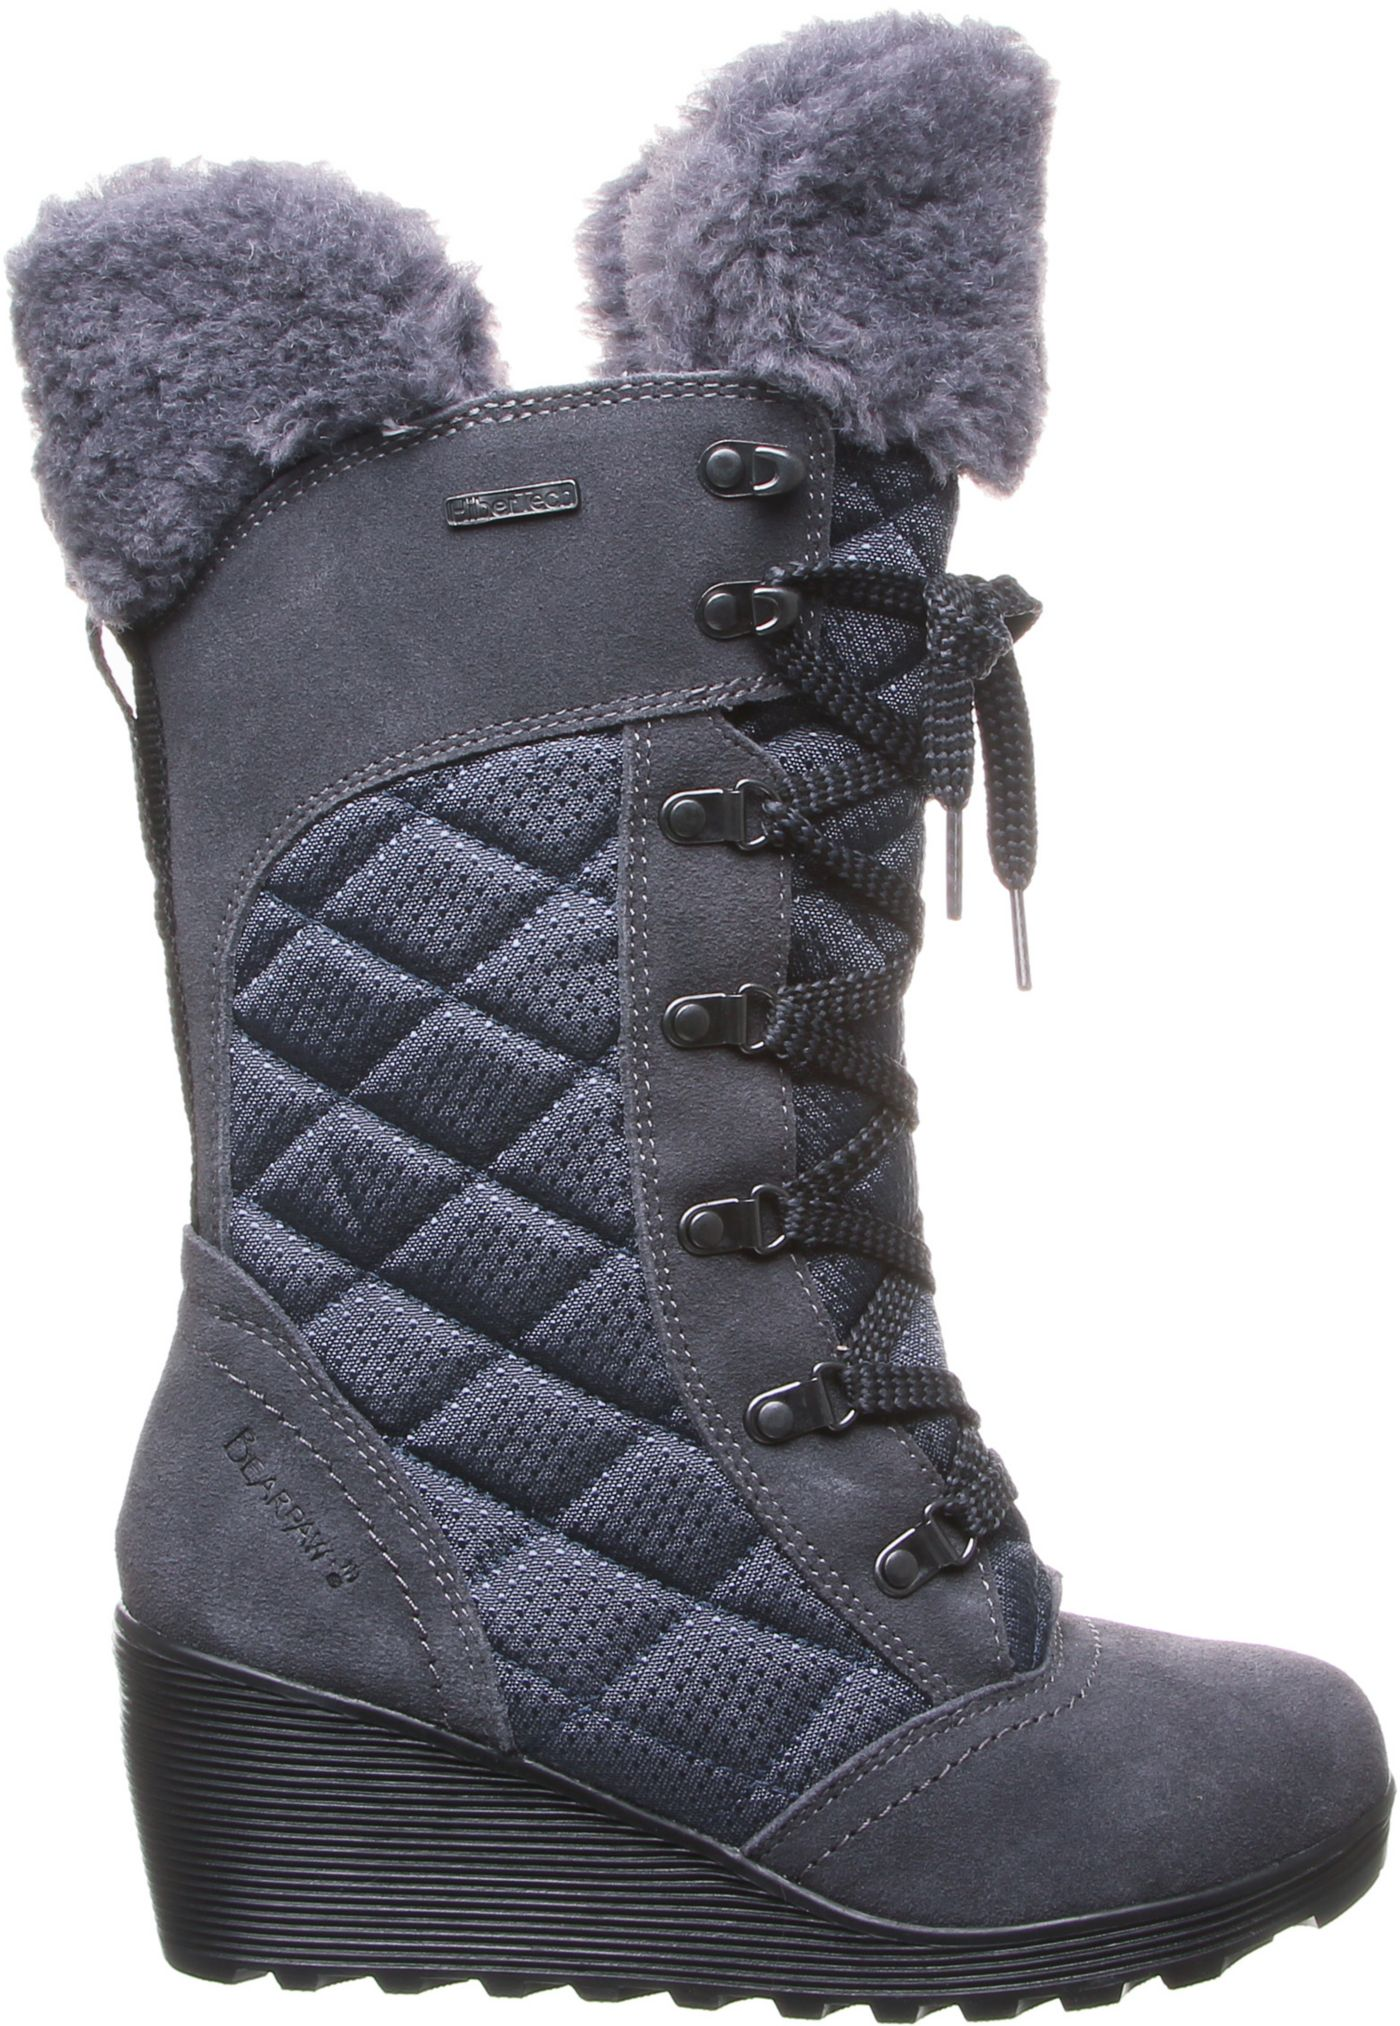 BEARPAW Women's Destiny 200g Winter Boots